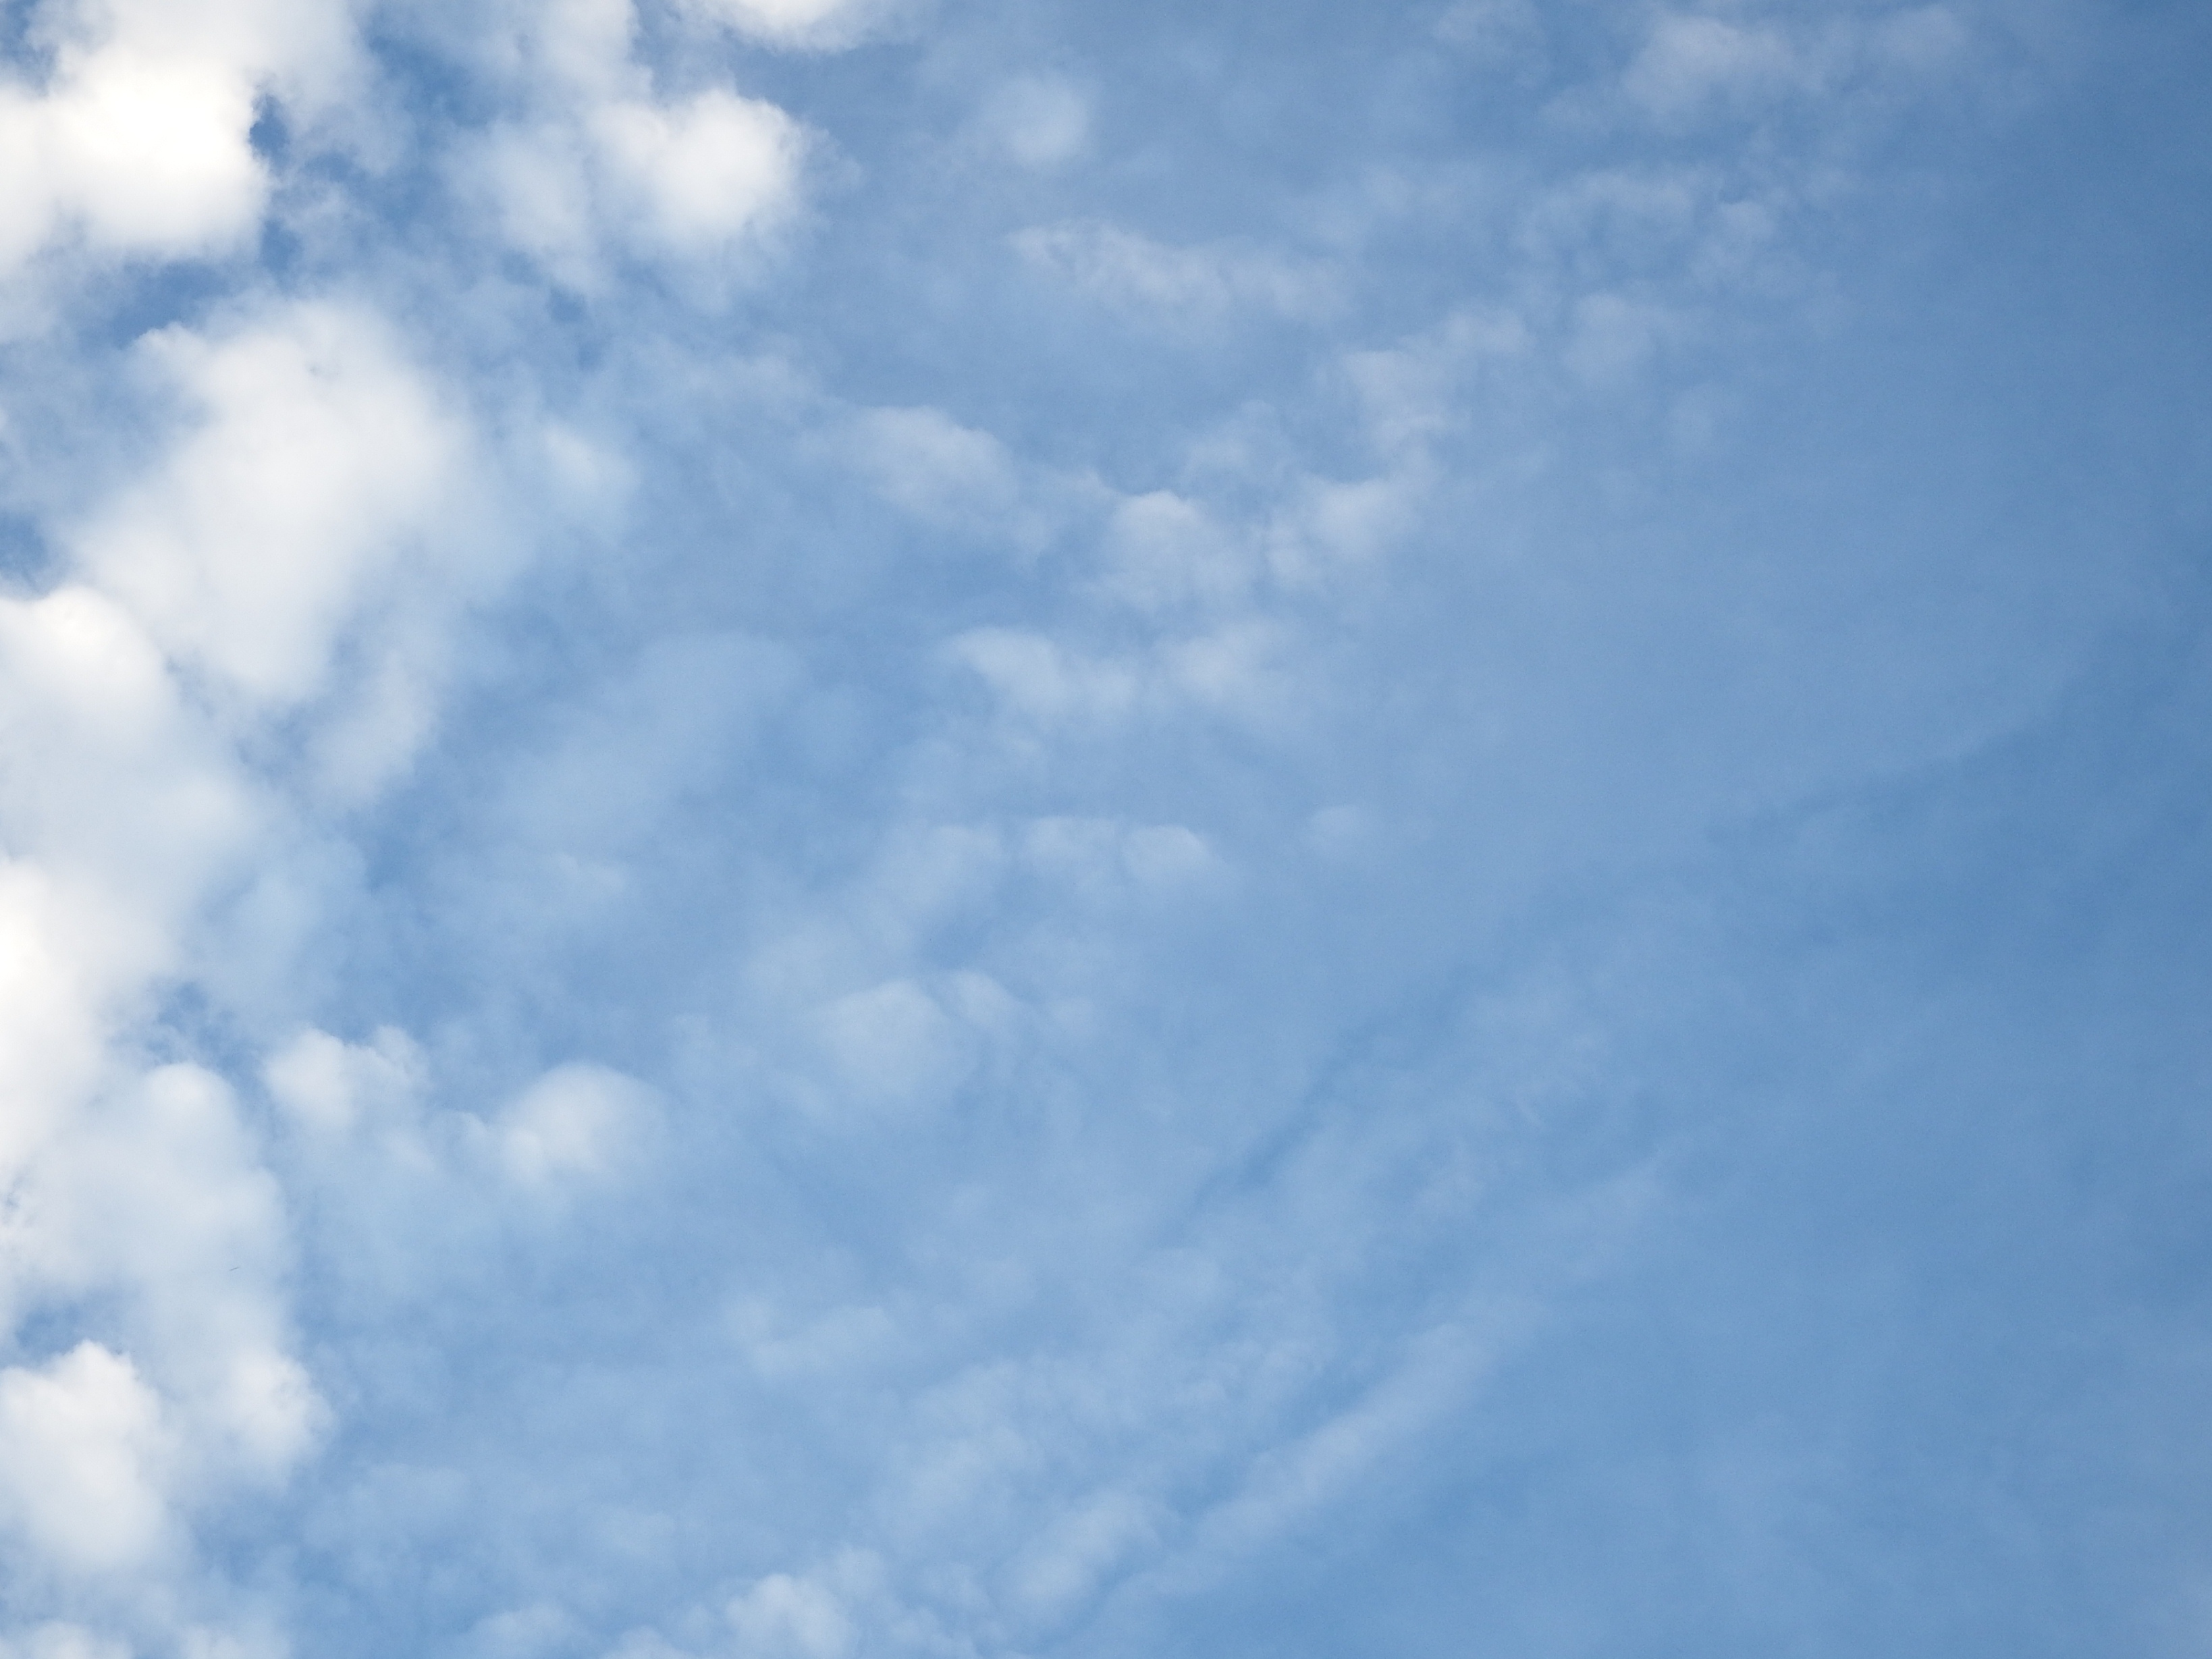 Blue sky and fluffy white clouds photo